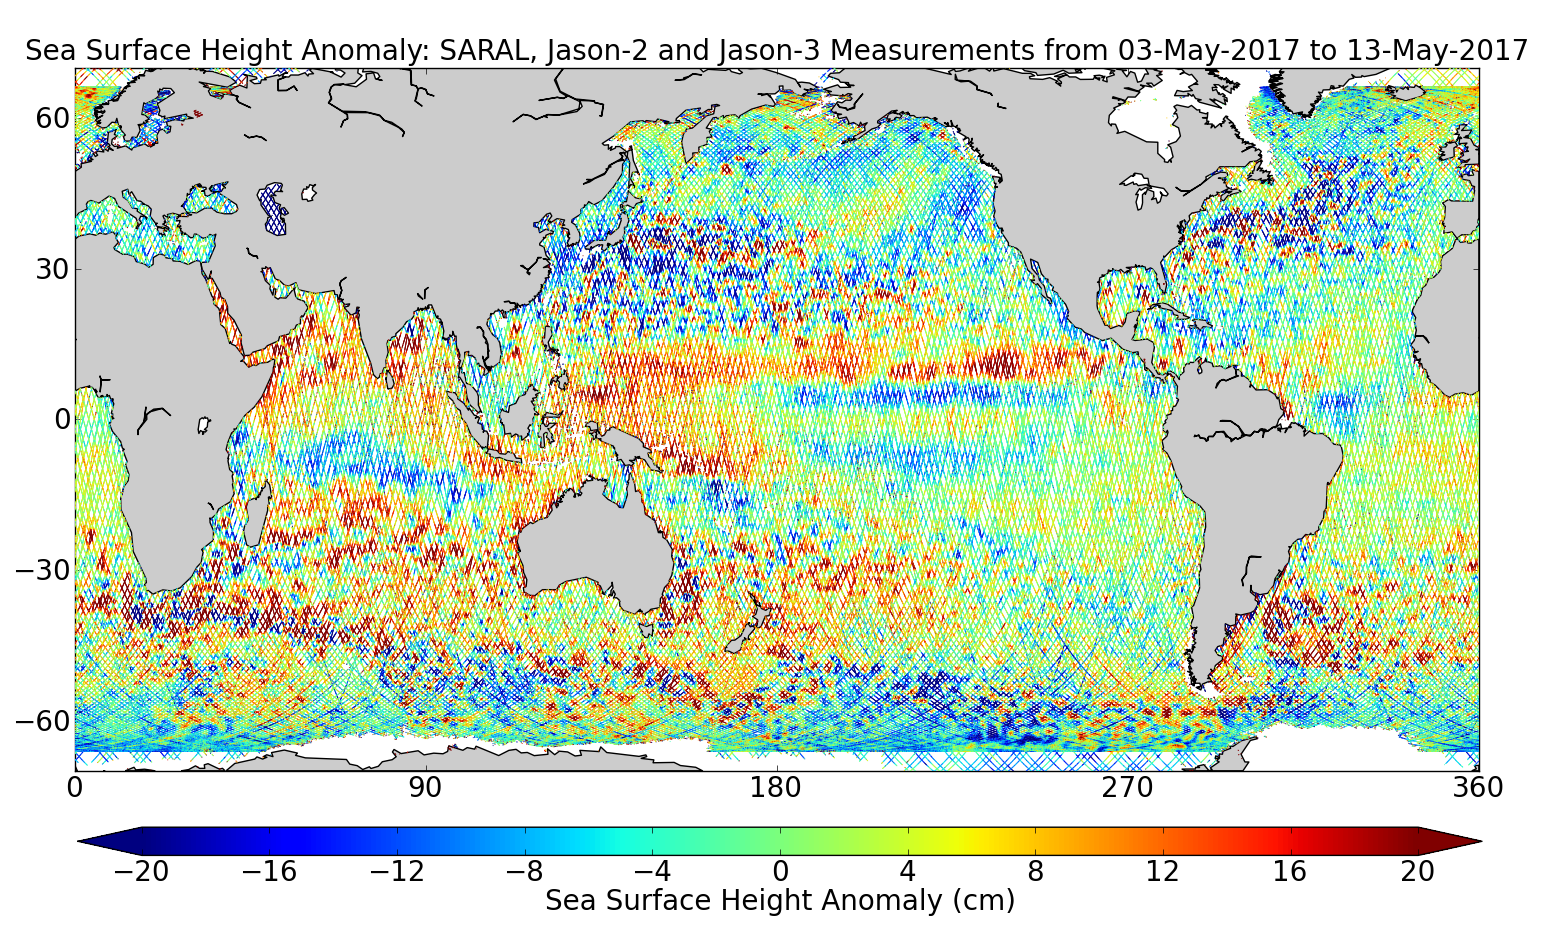 Sea Surface Height Anomaly: SARAL, Jason-2 and Jason-3 Measurements from 03-May-2017 to 13-May-2017